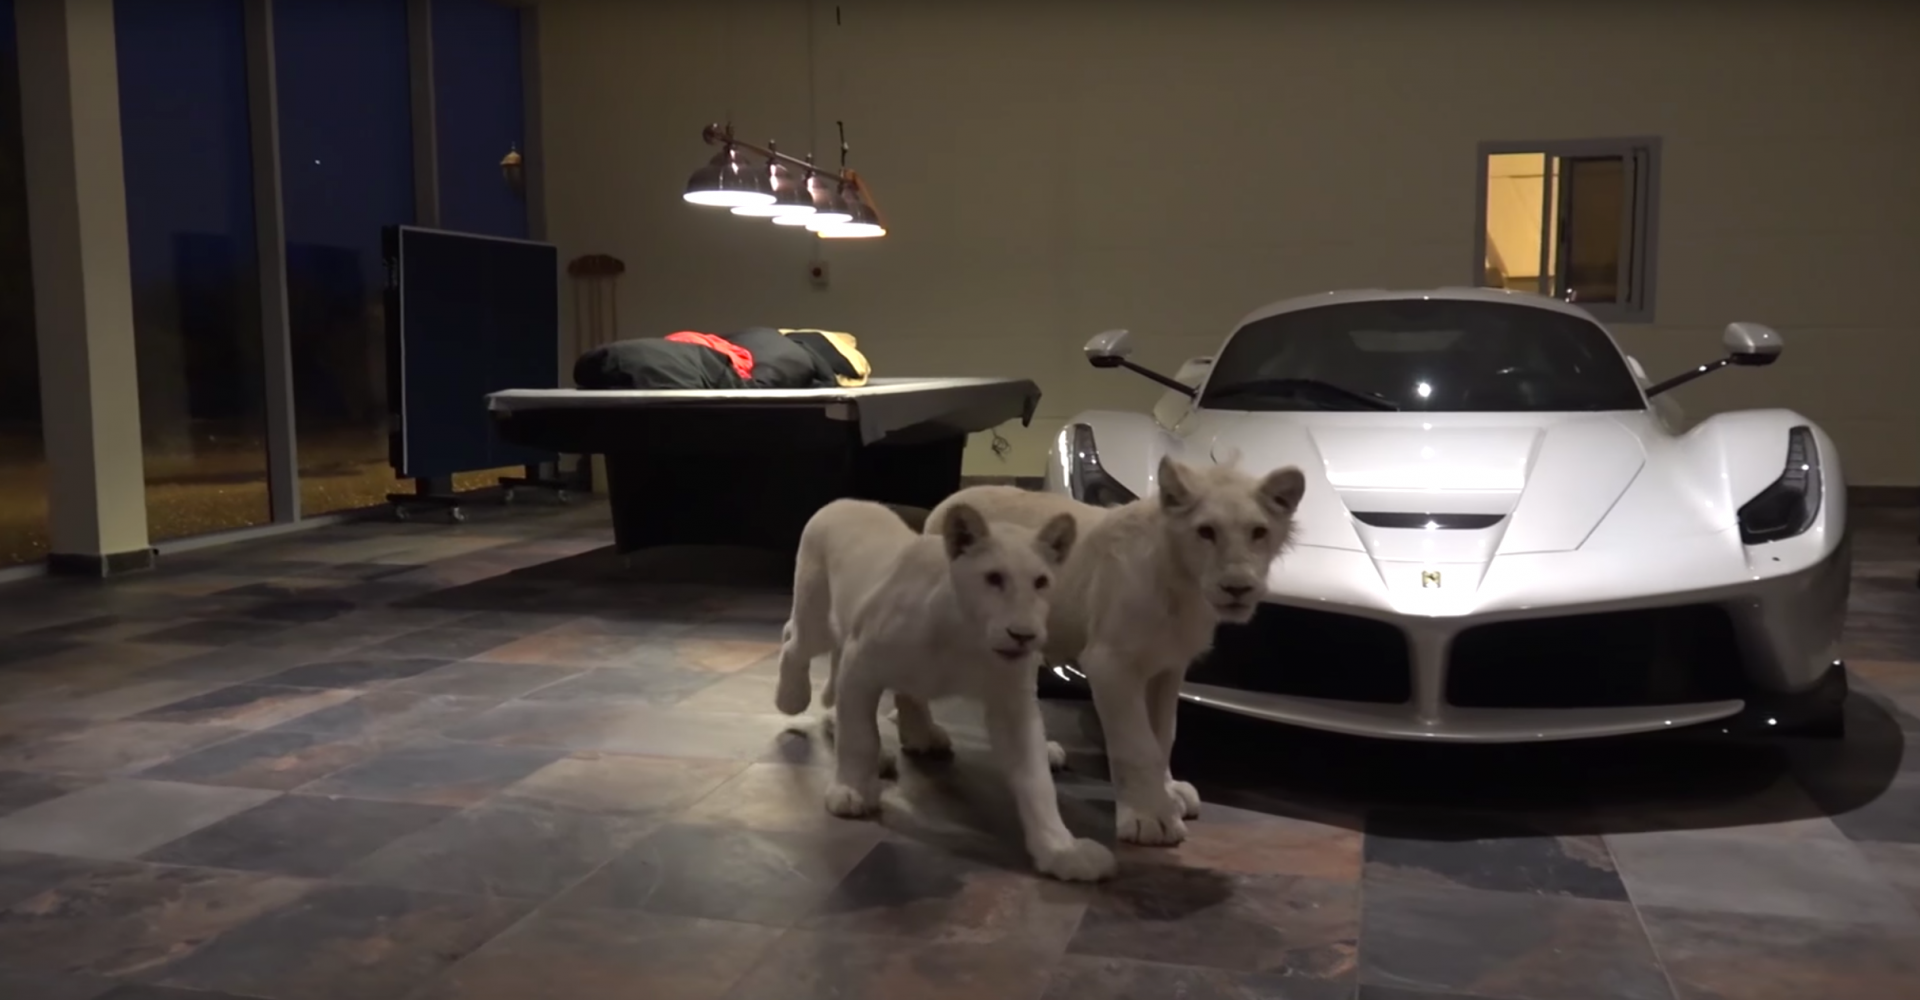 Lion Cubs And Cars Co-Exist In Qatari Garage